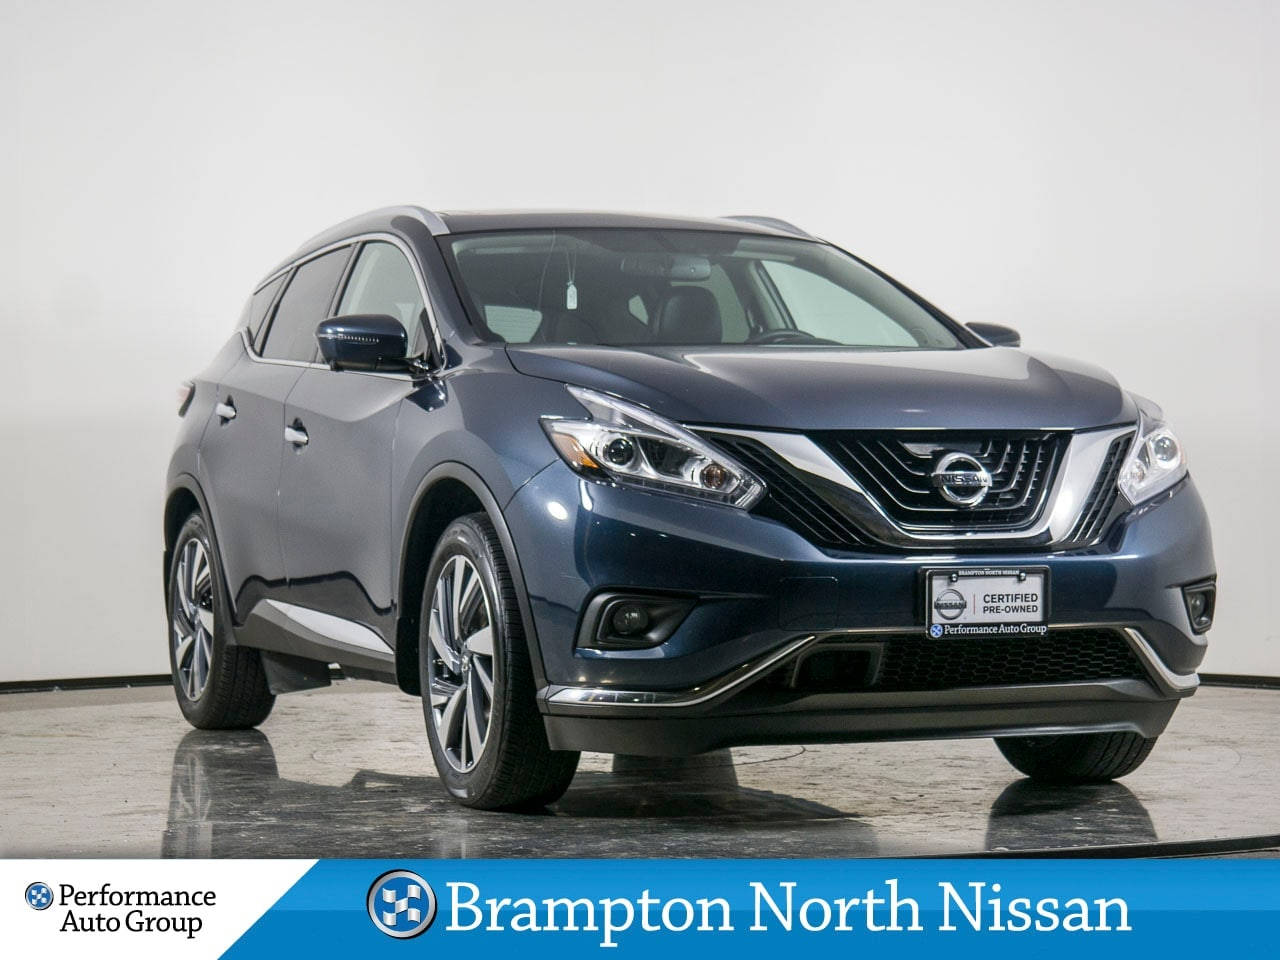 niagara rims htm cars owned start for platinum murano suv remote pre nissan sale auto used free accident navi